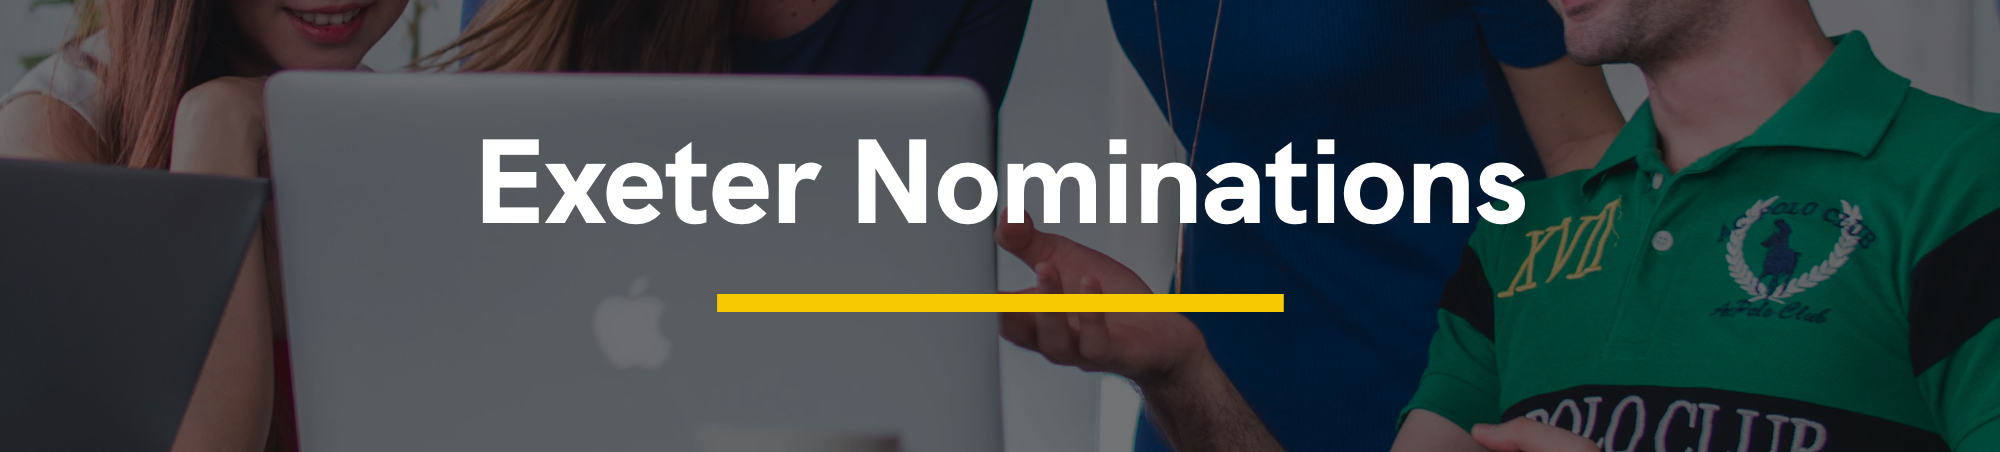 Exeter Nominations